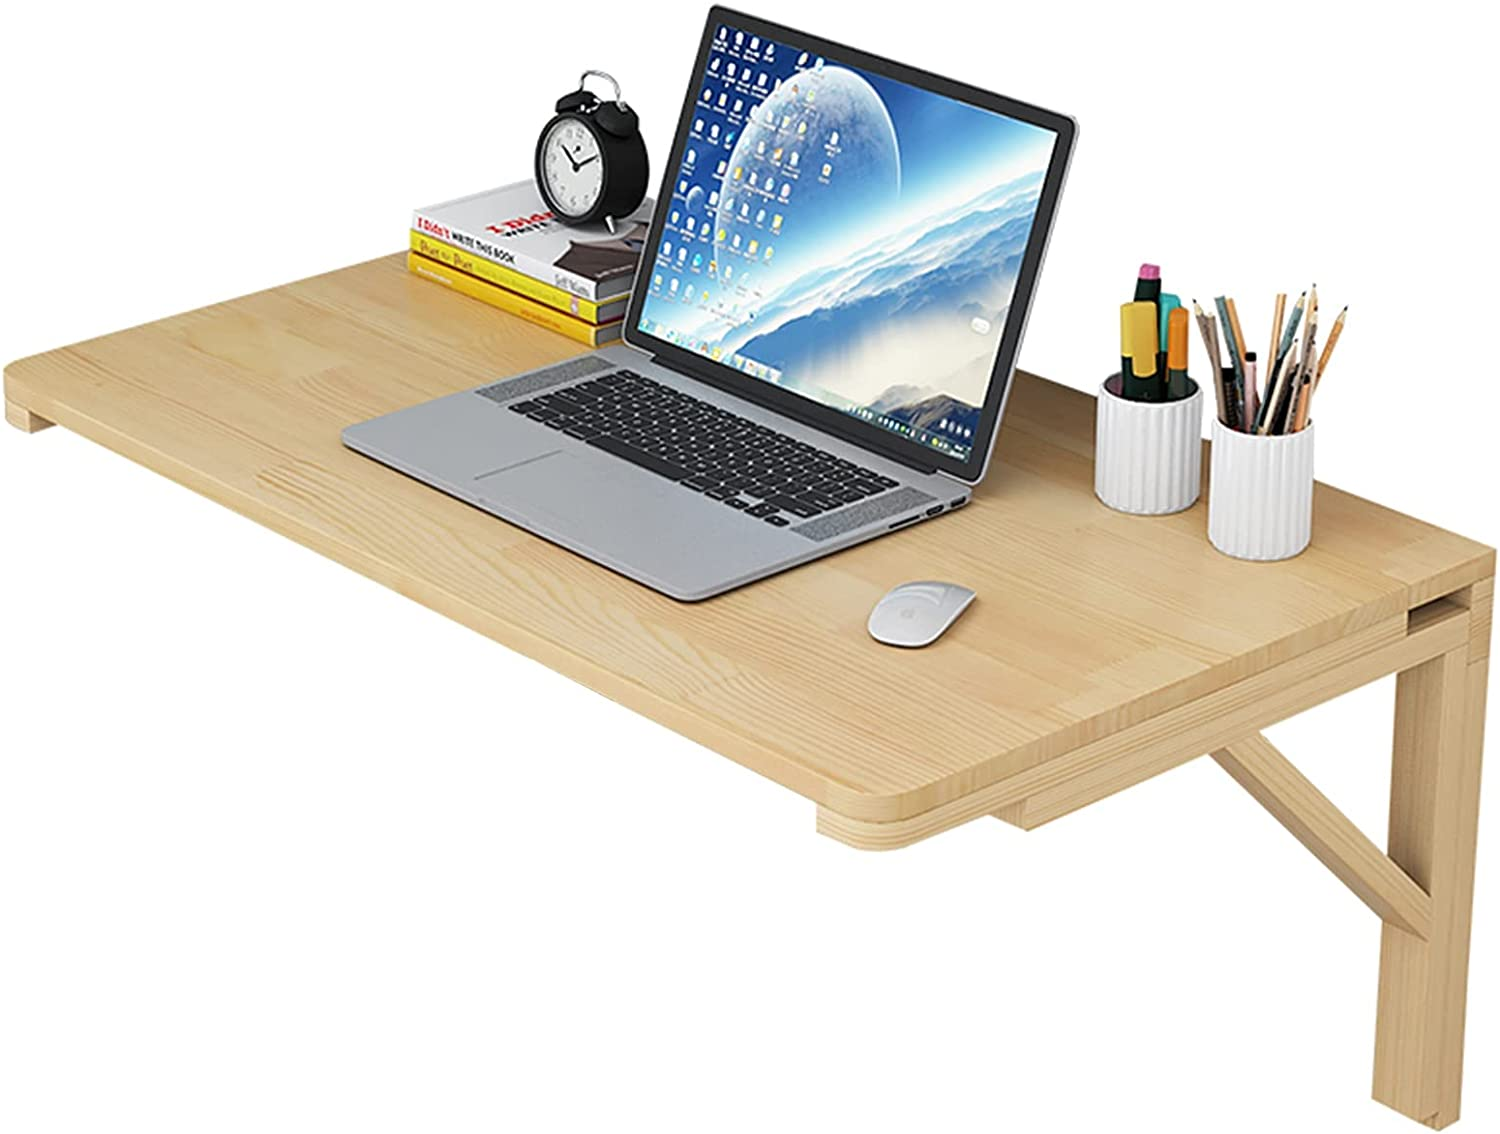 ZJMK Folding Tables Wall Mounted Leaf Drop S Wooden Table Max 59% OFF Max 83% OFF